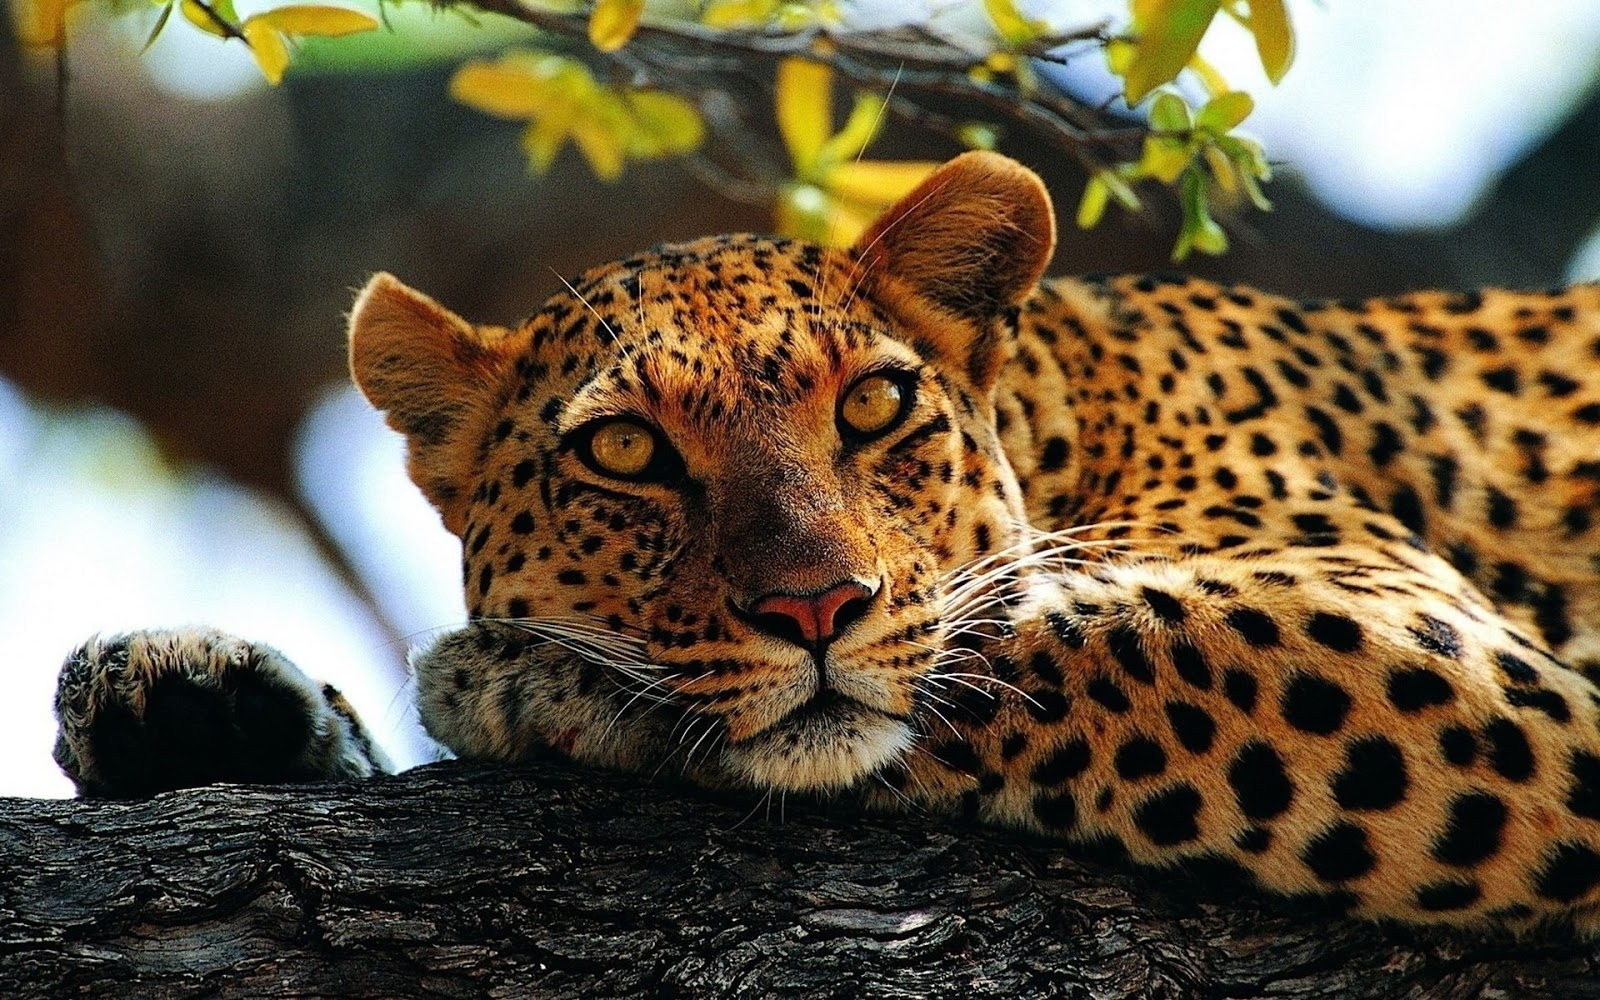 All About Animal Wildlife Cheetah Cool HD Wallpapers 2012 1600x1000